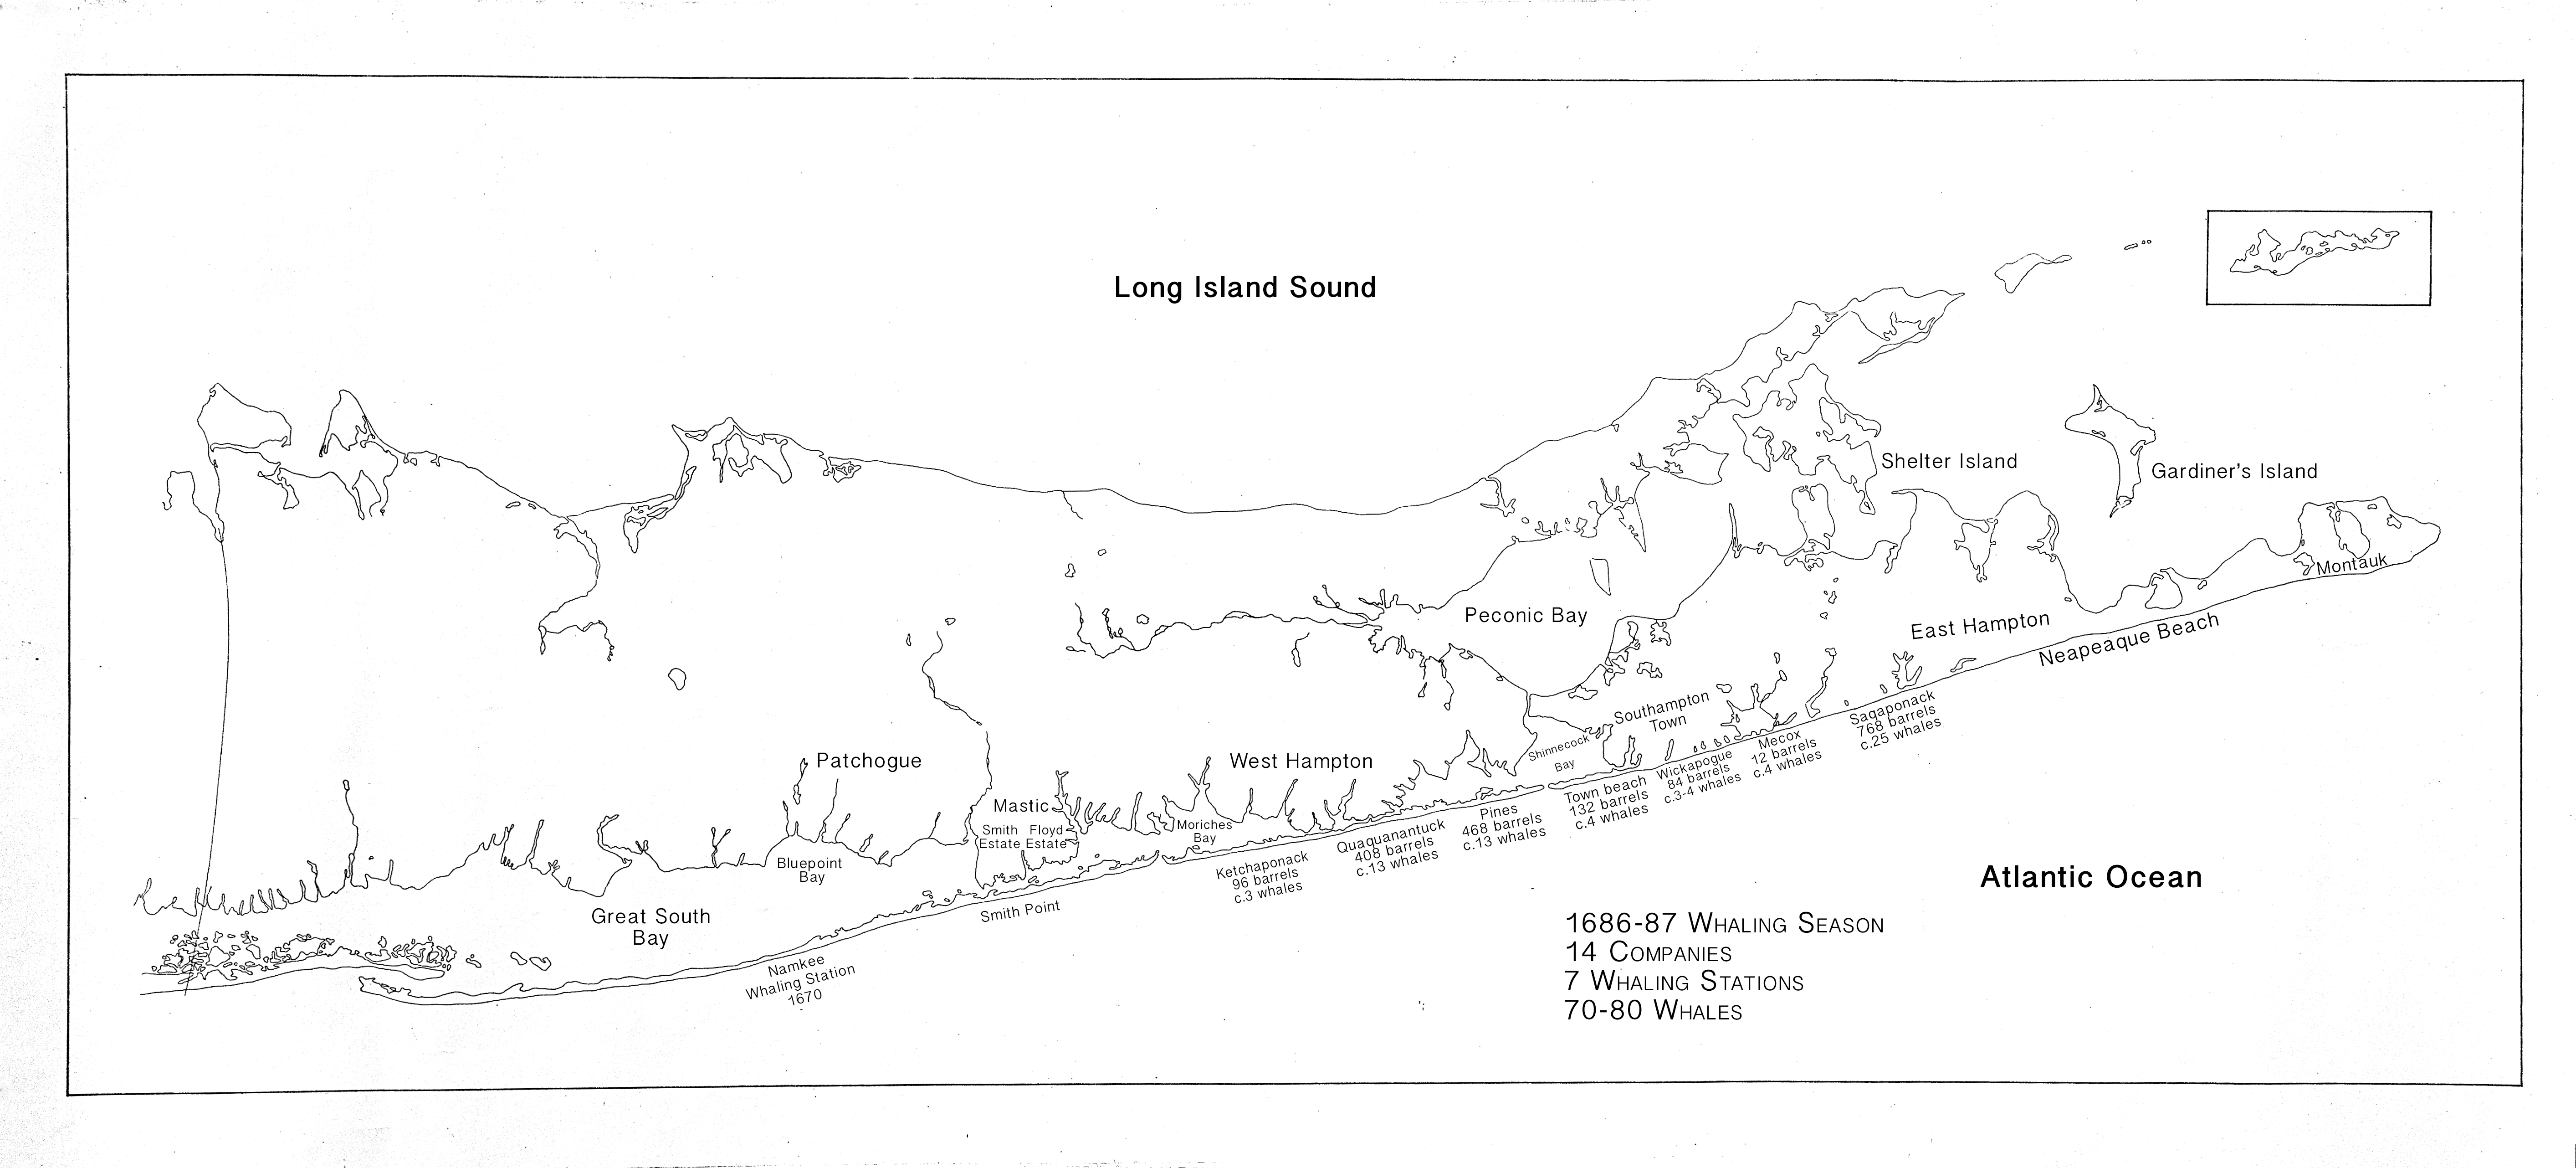 Indian Whalers on Long Island, 1669-1746 | Long Island ... on hampton beaches long island, eastern long island, map of santa cruz mountains, southampton long island, east hampton long island, south hampton long island, map of columbia valley, map of livermore valley, map of santa ynez valley, map of sonoma coast,